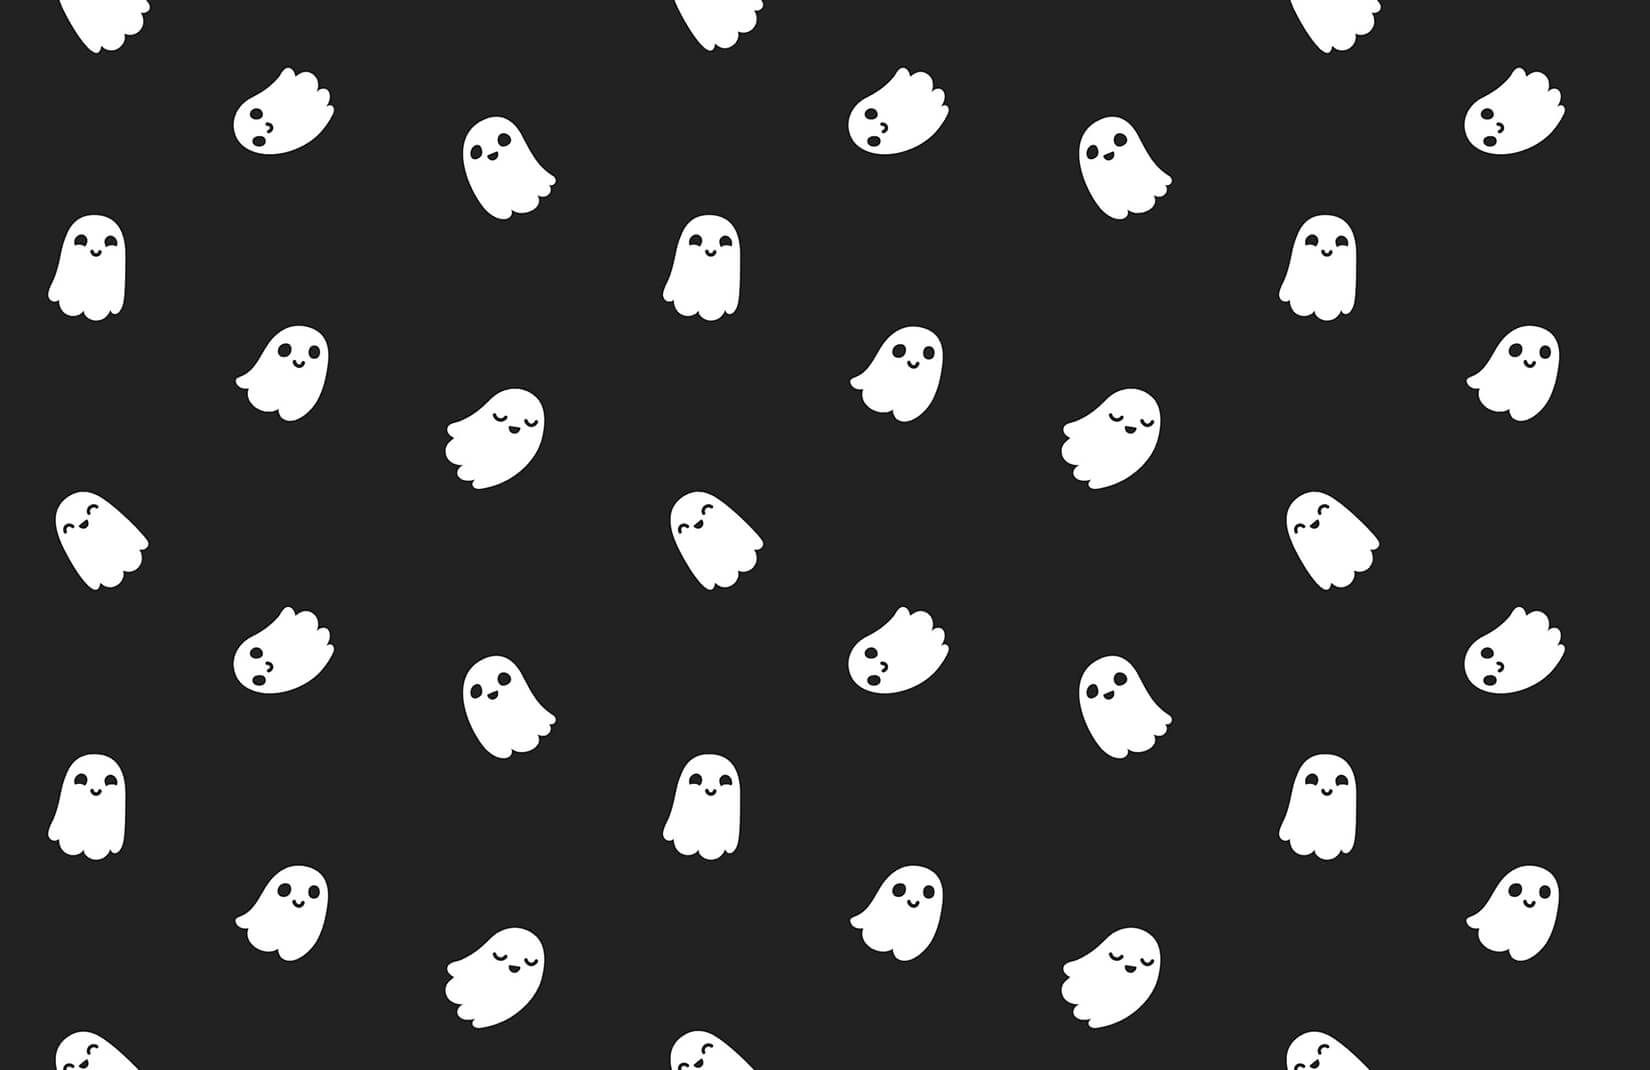 Little Ghost Wallpaper Mural Murals Wallpaper Halloween Desktop Wallpaper Cute Desktop Wallpaper Halloween Wallpaper Cute